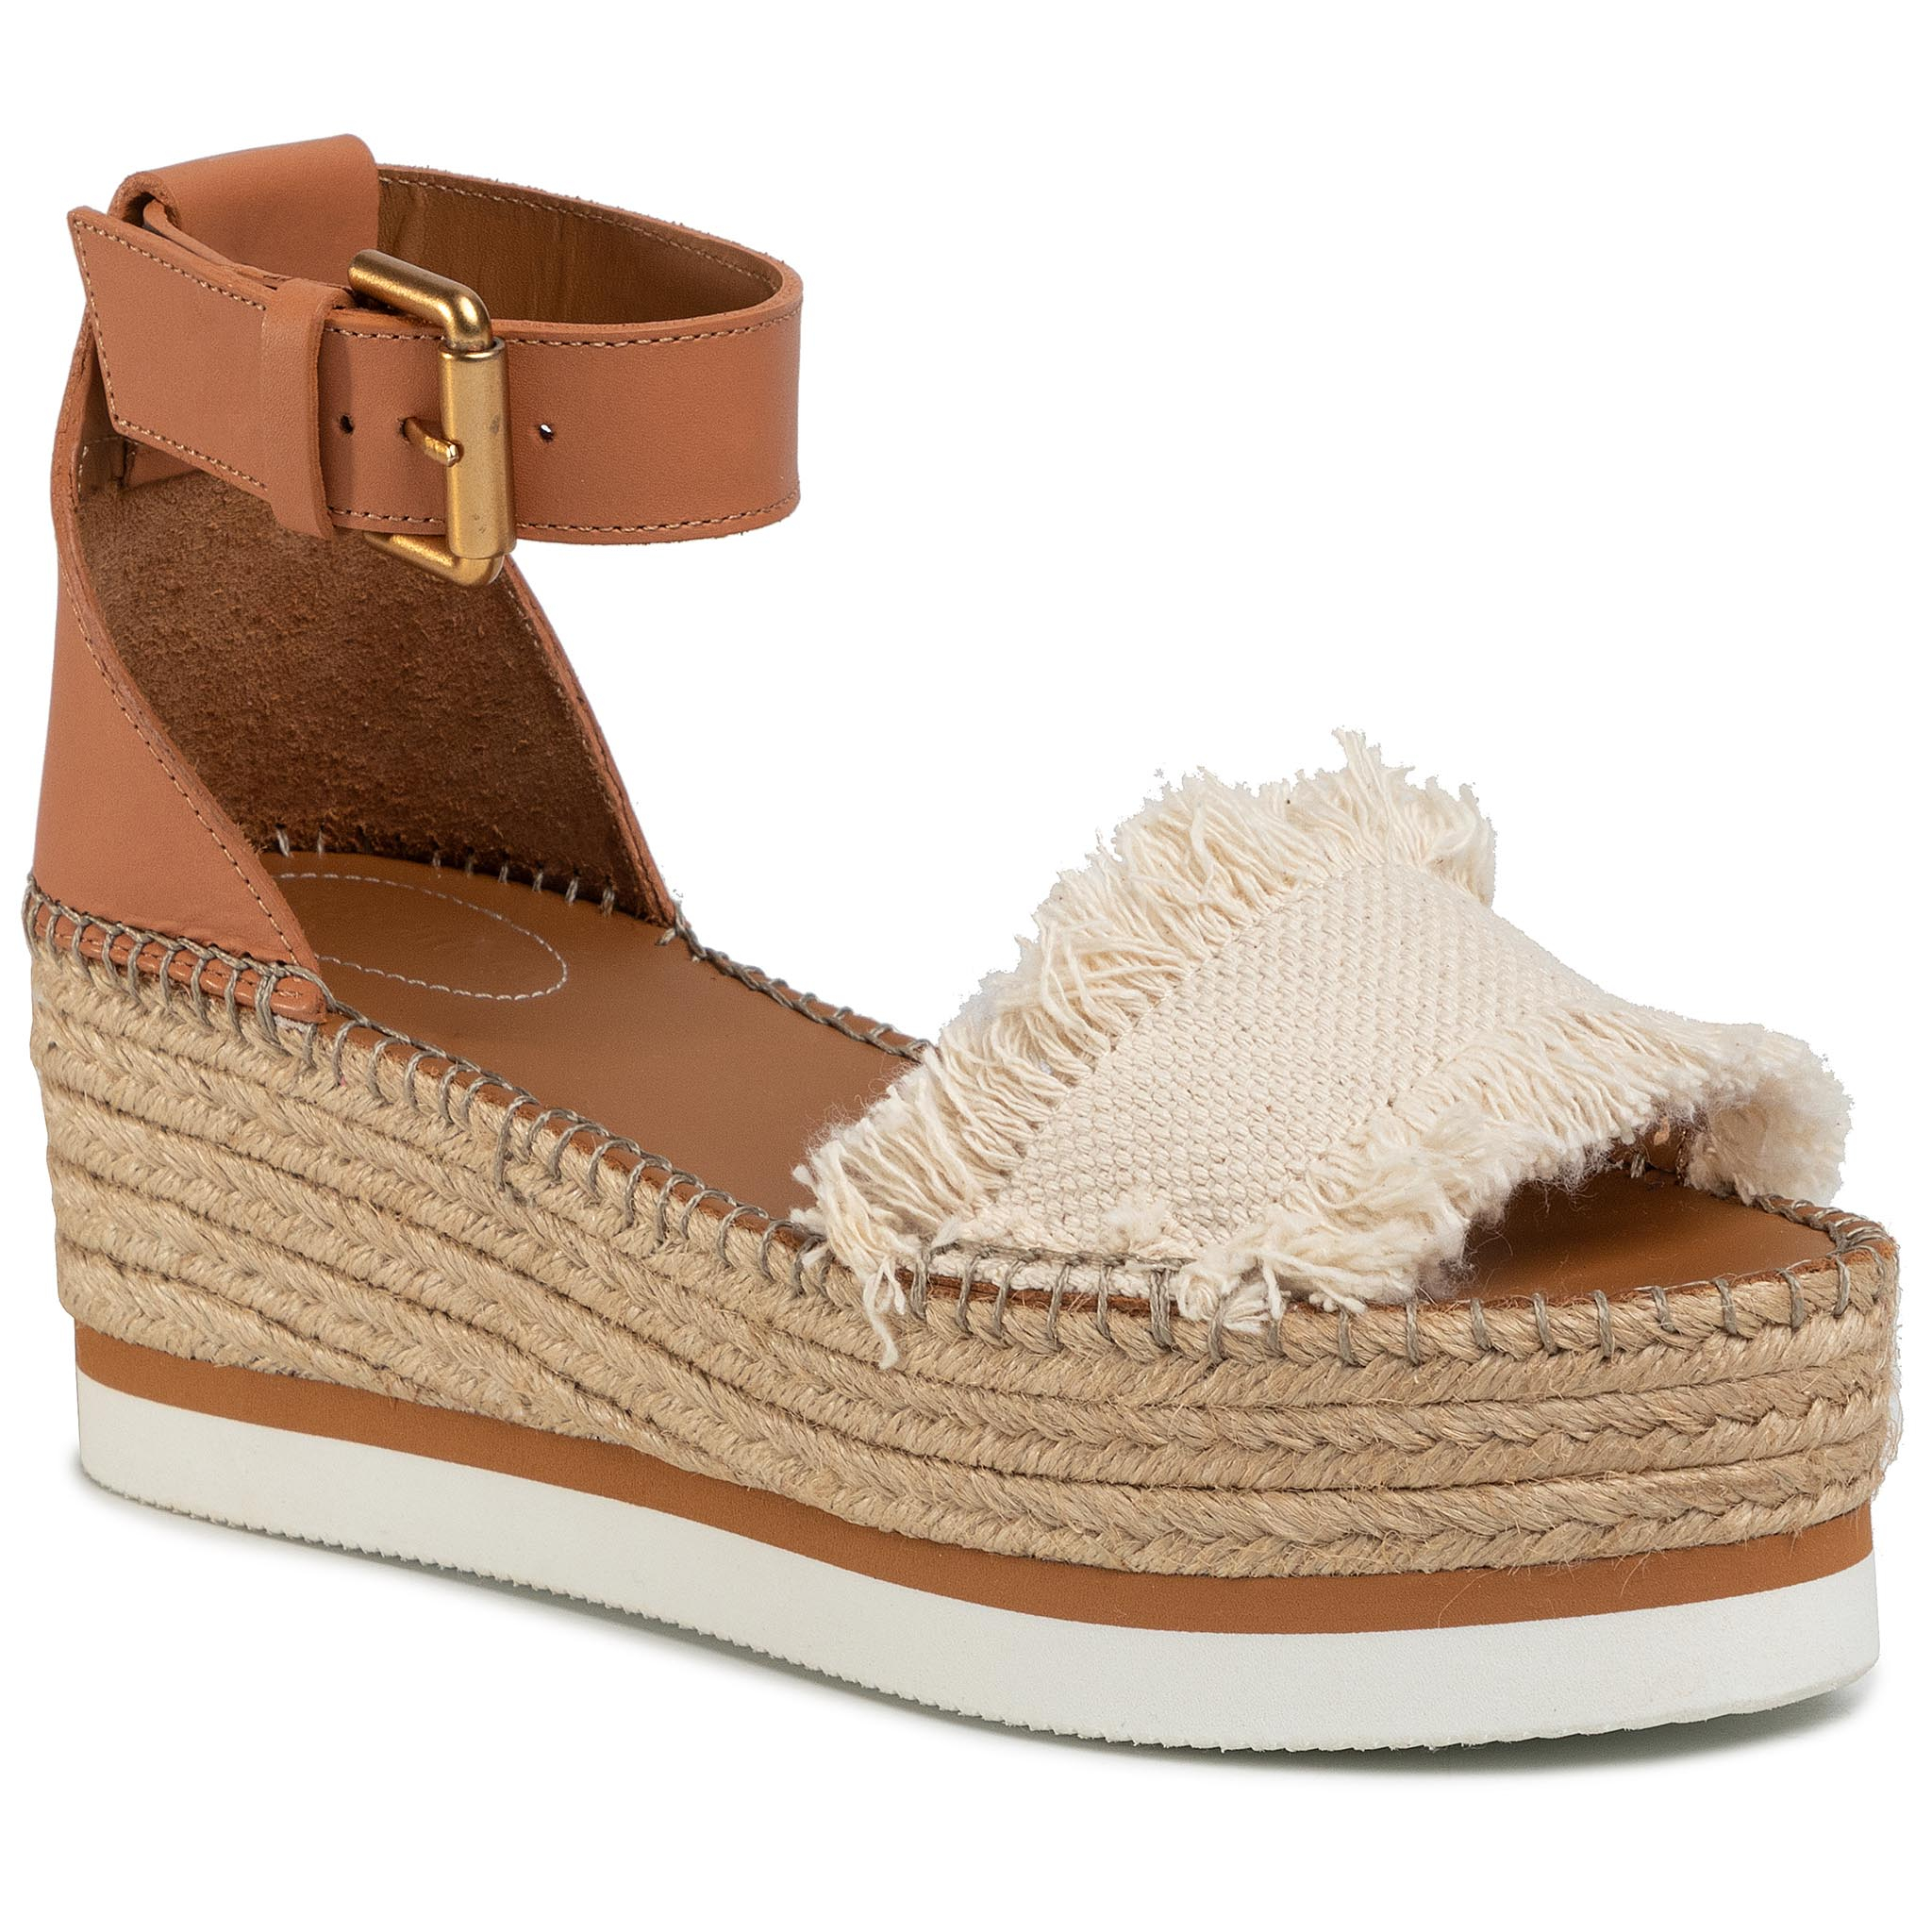 Image of Espadrillas SEE BY CHLOÉ - SB32201B Light 517